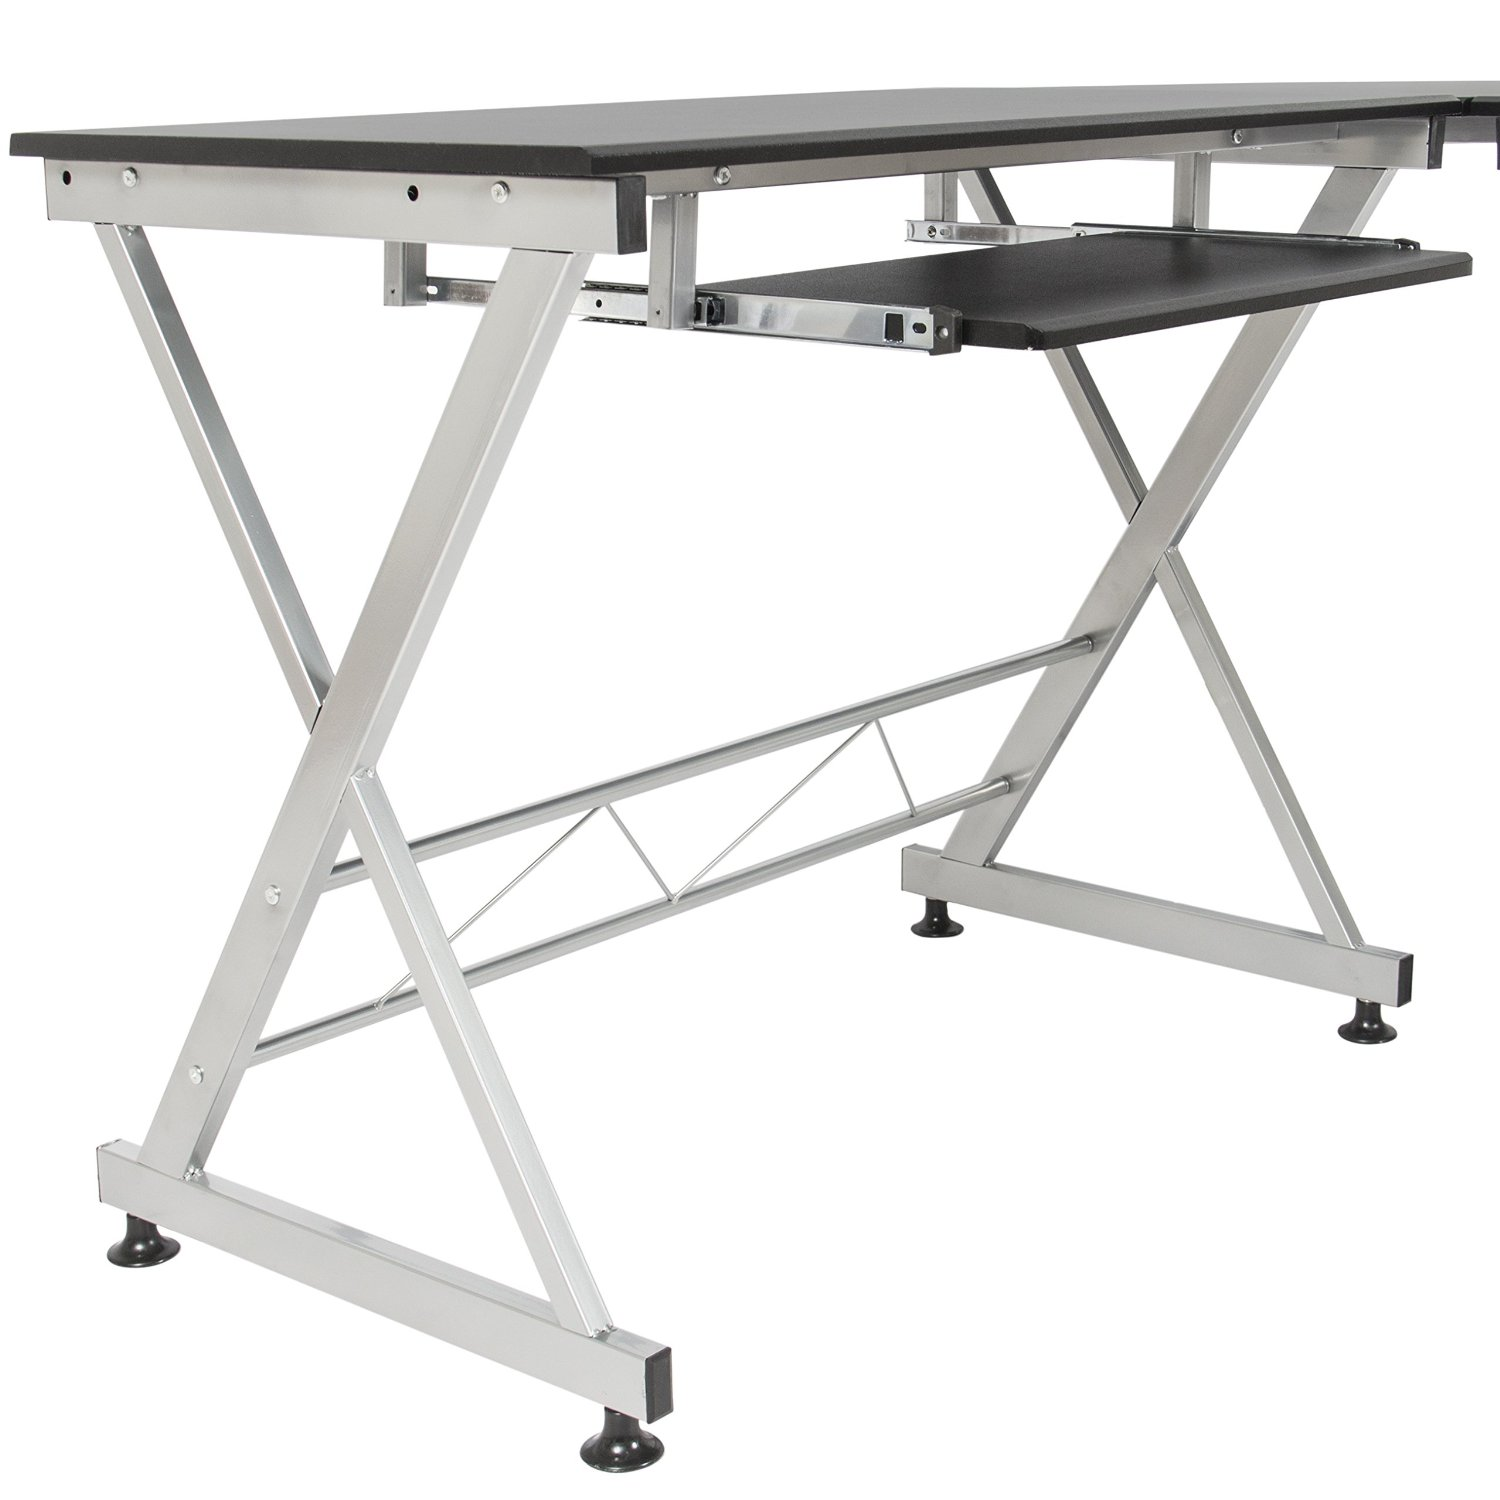 The L Shaped Computer Desk Brings Functional Office Furnishing To A New  Level Of Style, Maximizing Your Work Area. The Wood Material Stain  Resistant, ...